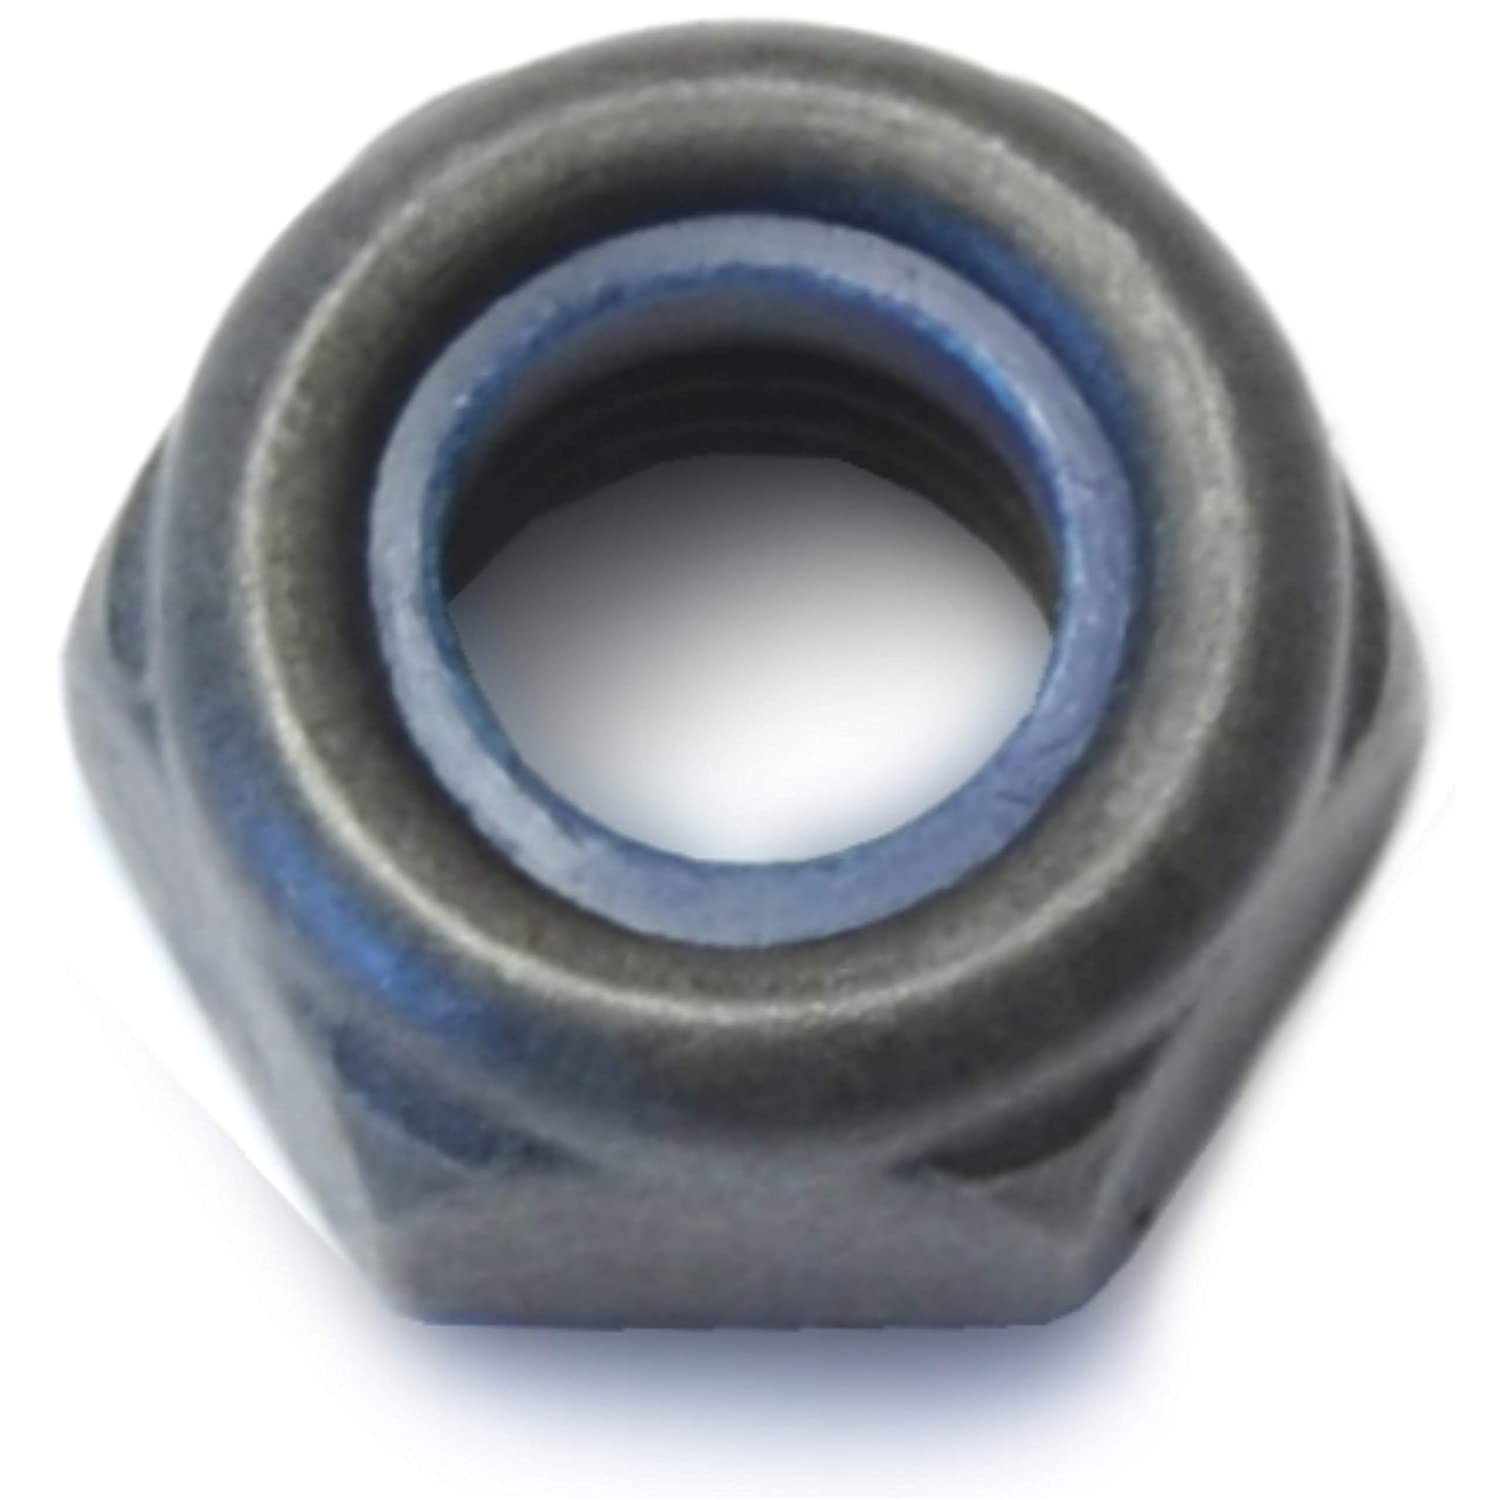 Hard-to-Find Fastener 014973456443 Lock Nut, 8mm-1.25, Piece-481